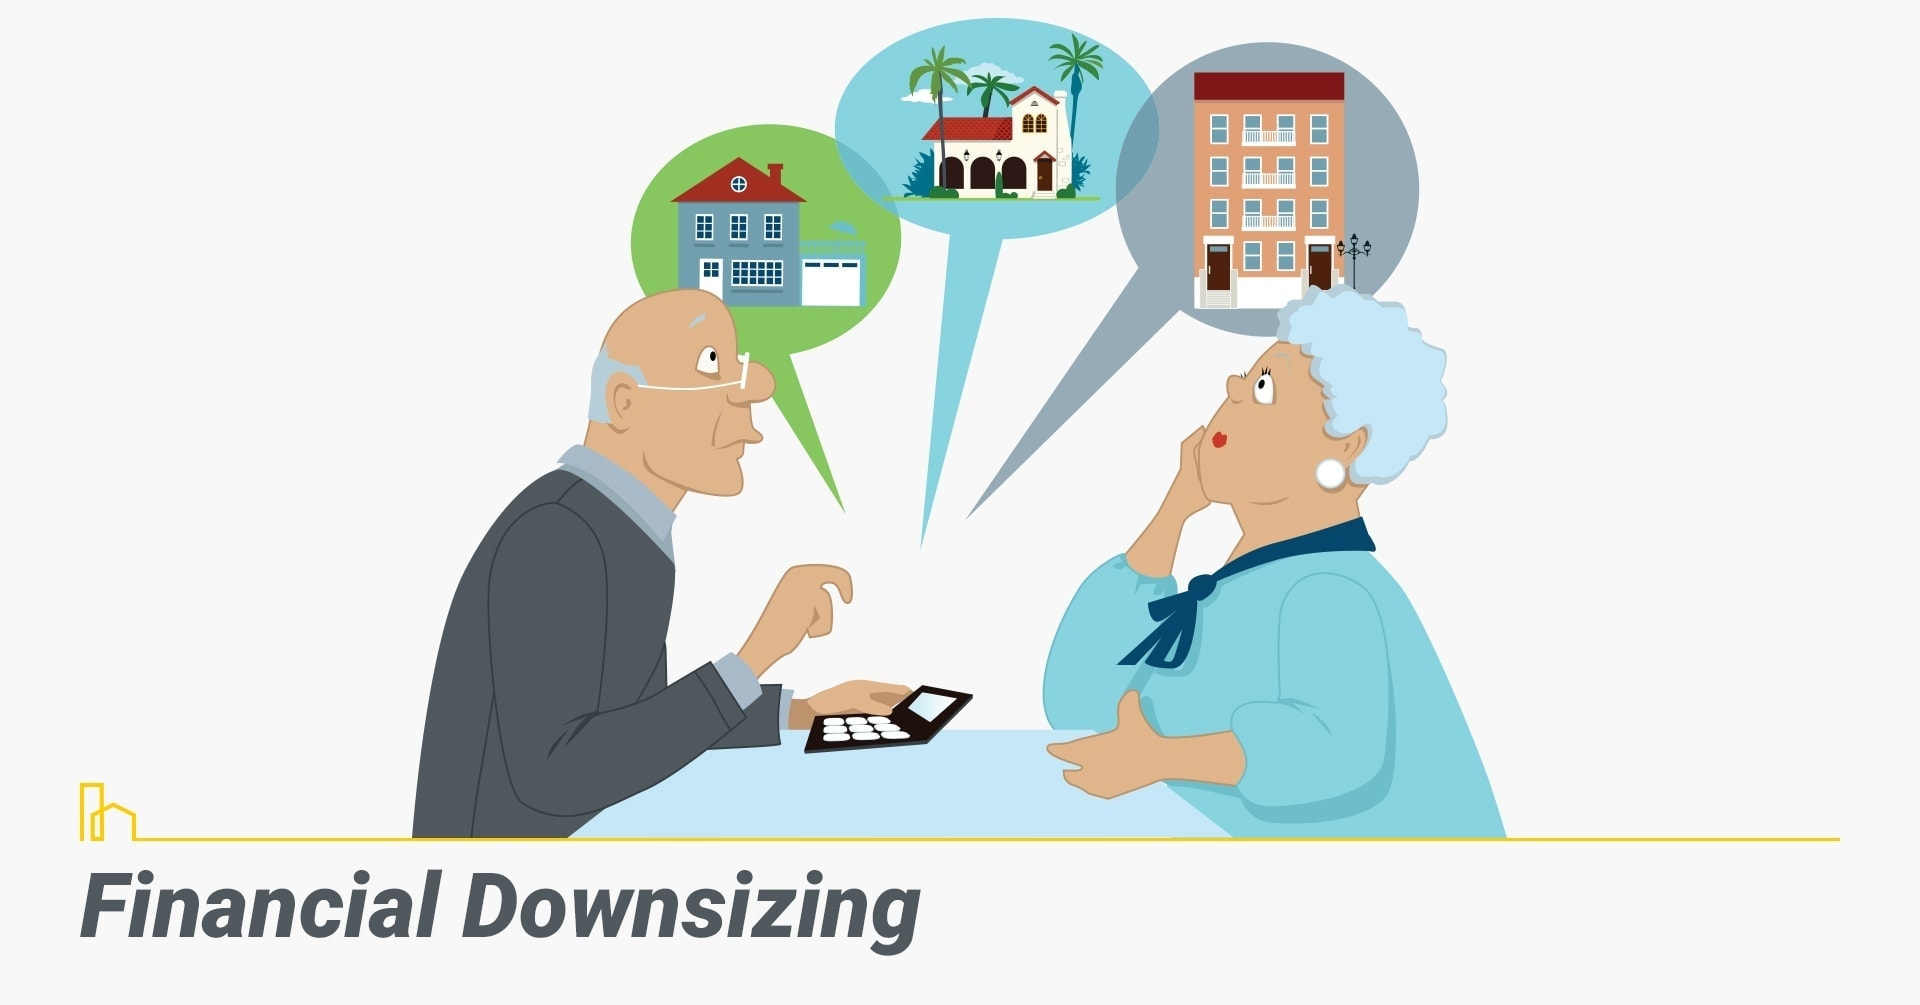 Financial Downsizing, lower homeownership costs